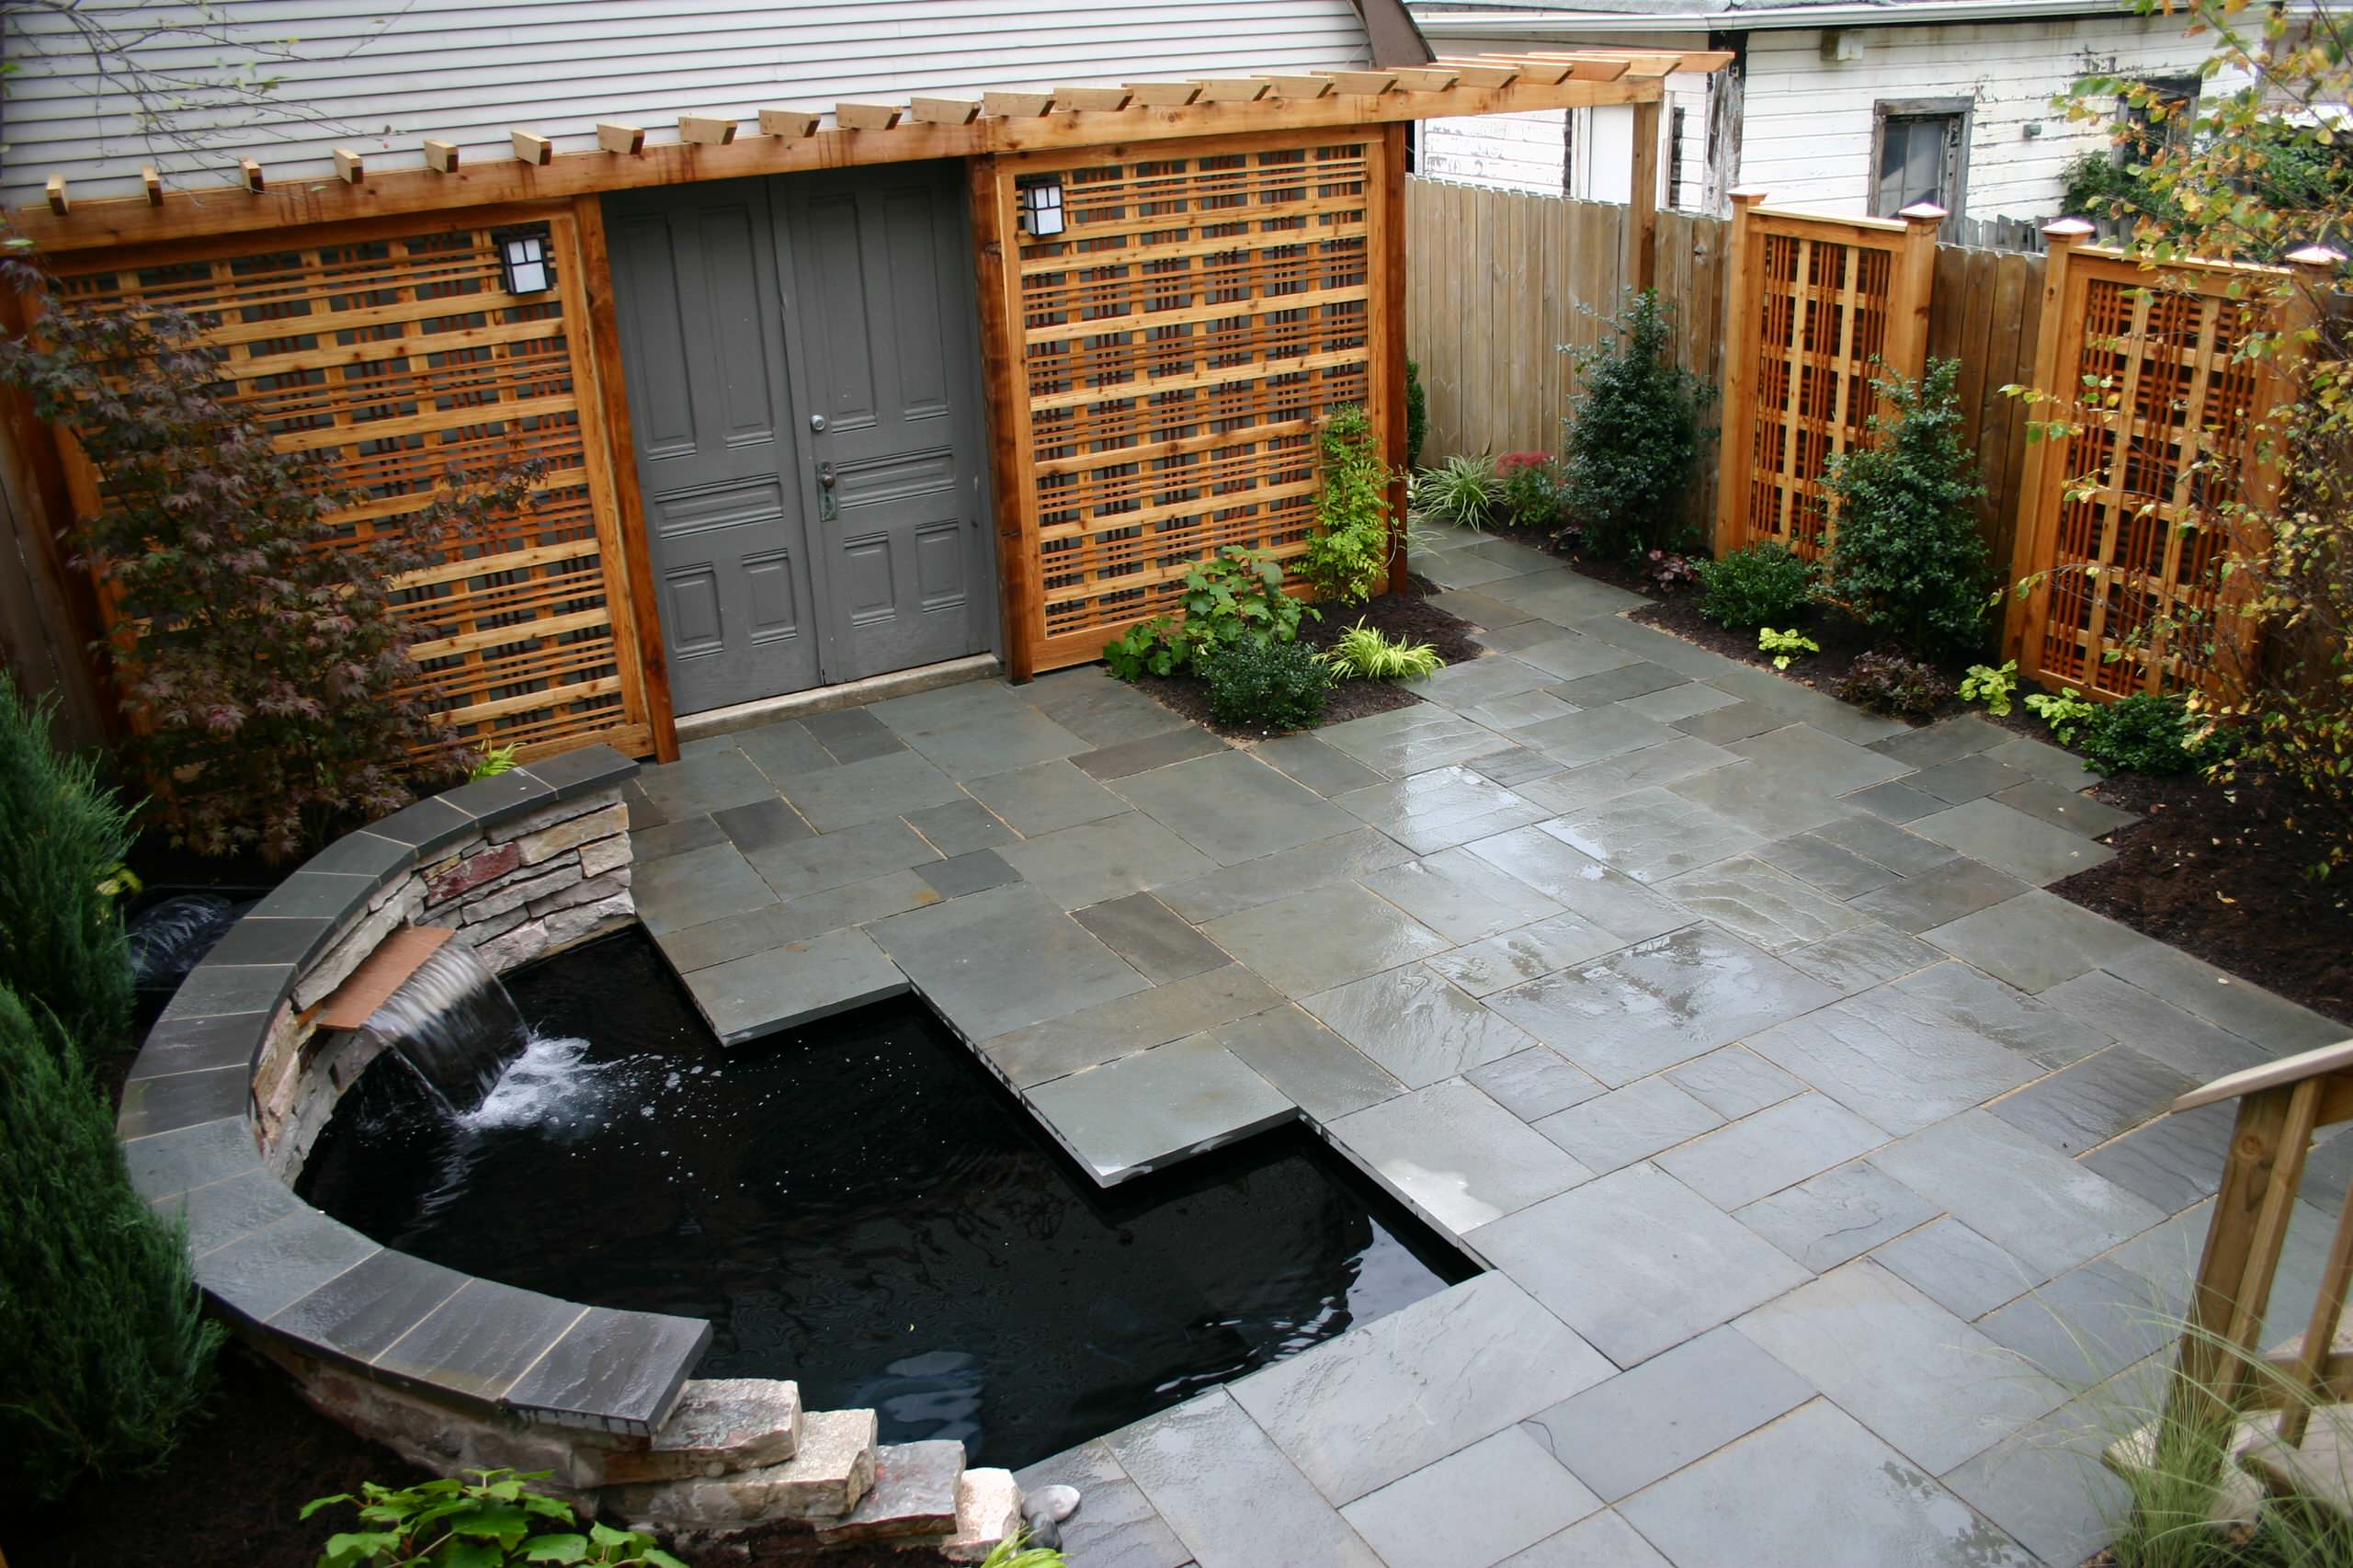 Tiny yard with koi pond